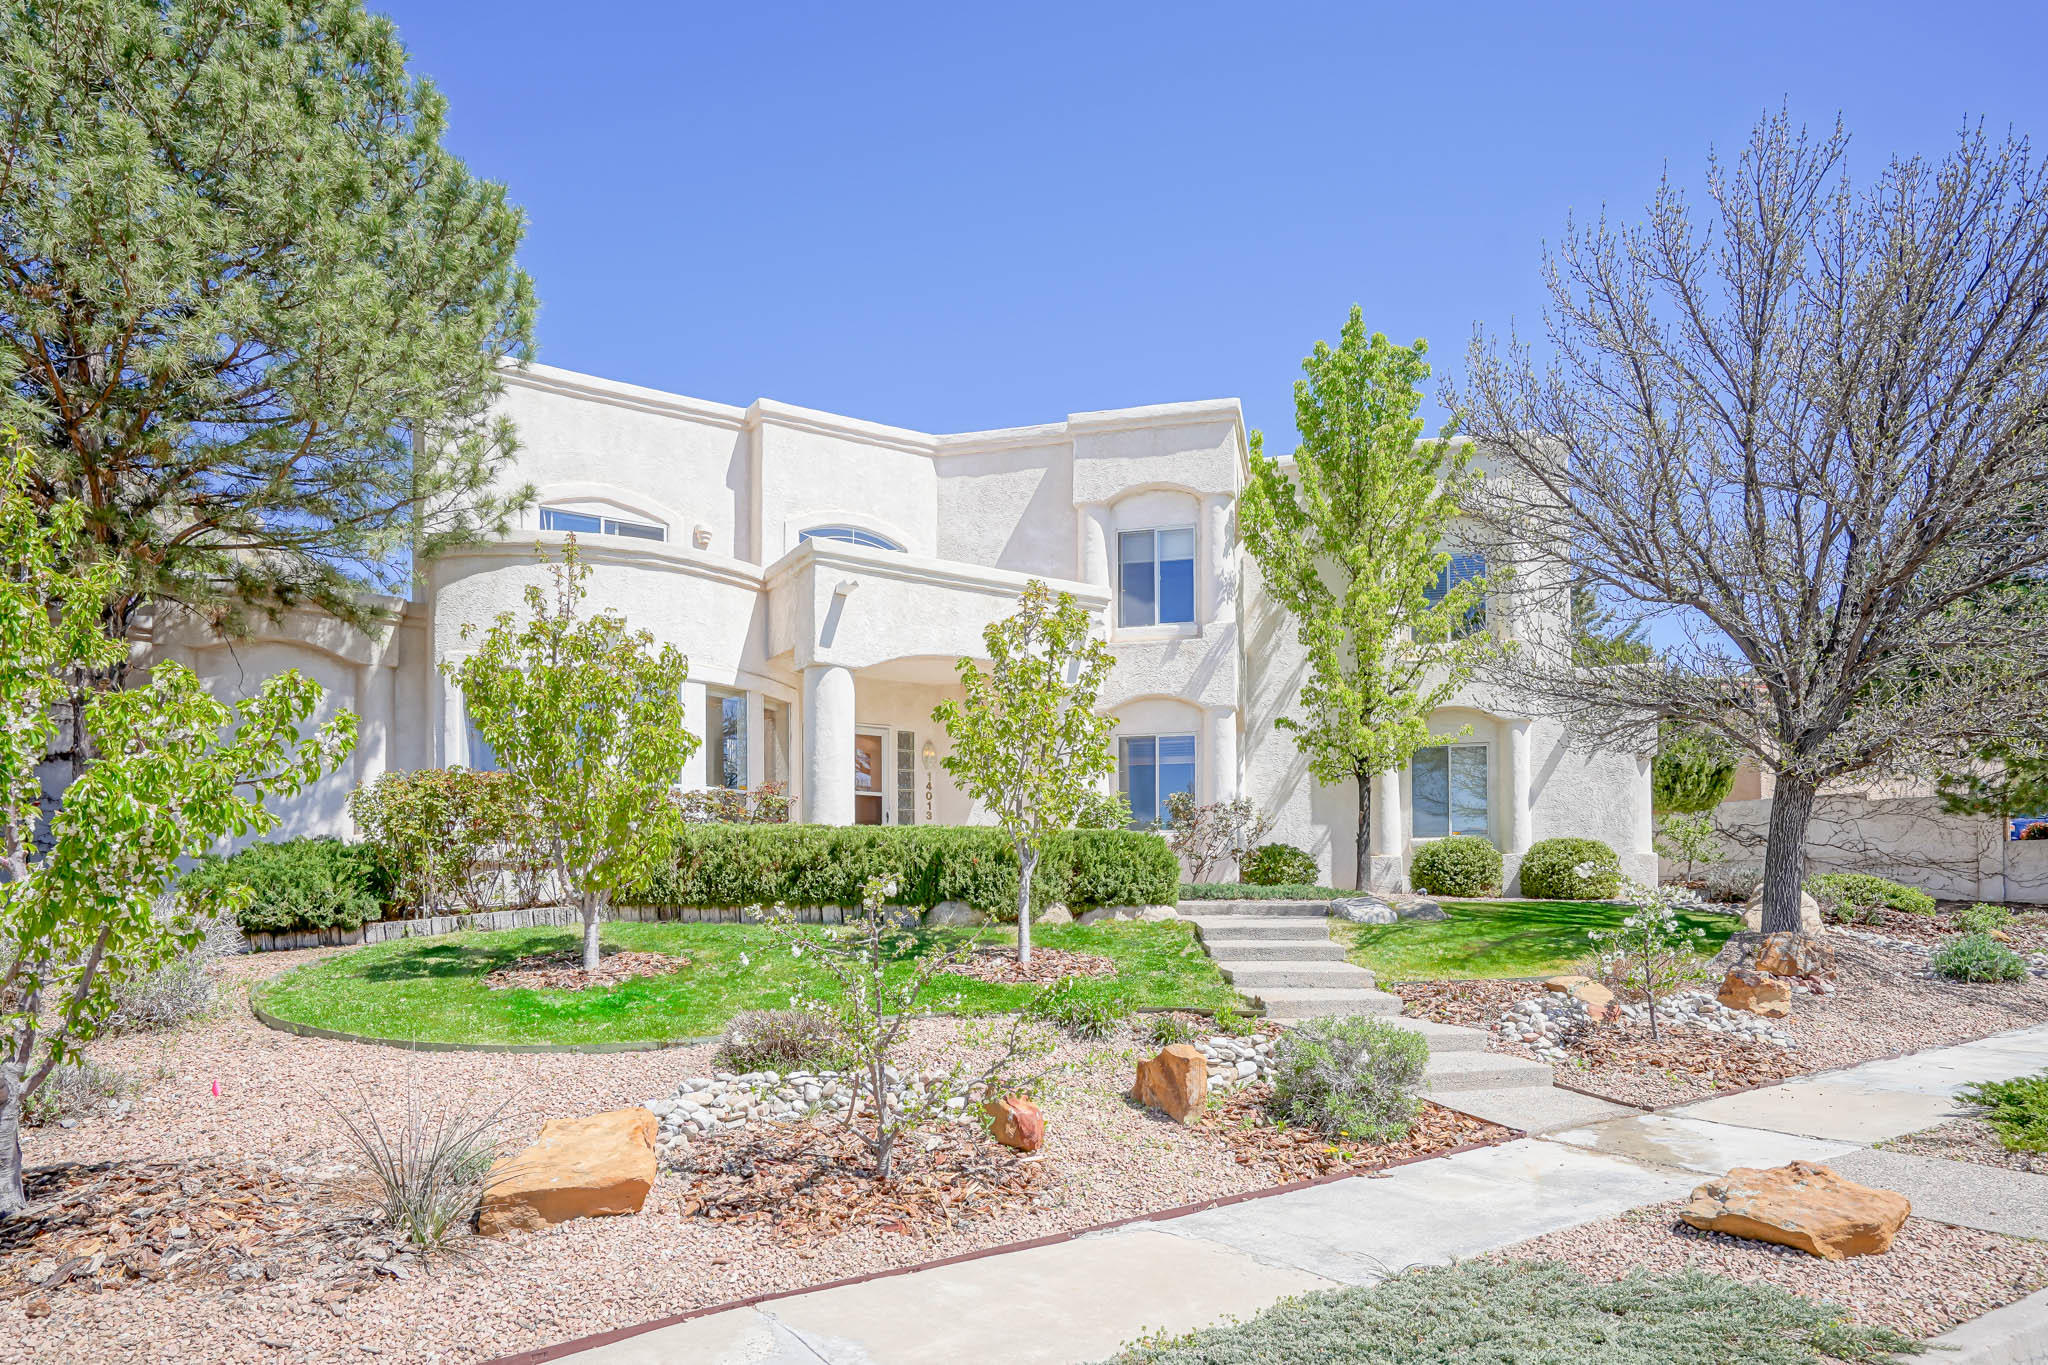 14013 WIND MOUNTAIN Road NE, Albuquerque, NM 87112 - Albuquerque, NM real estate listing